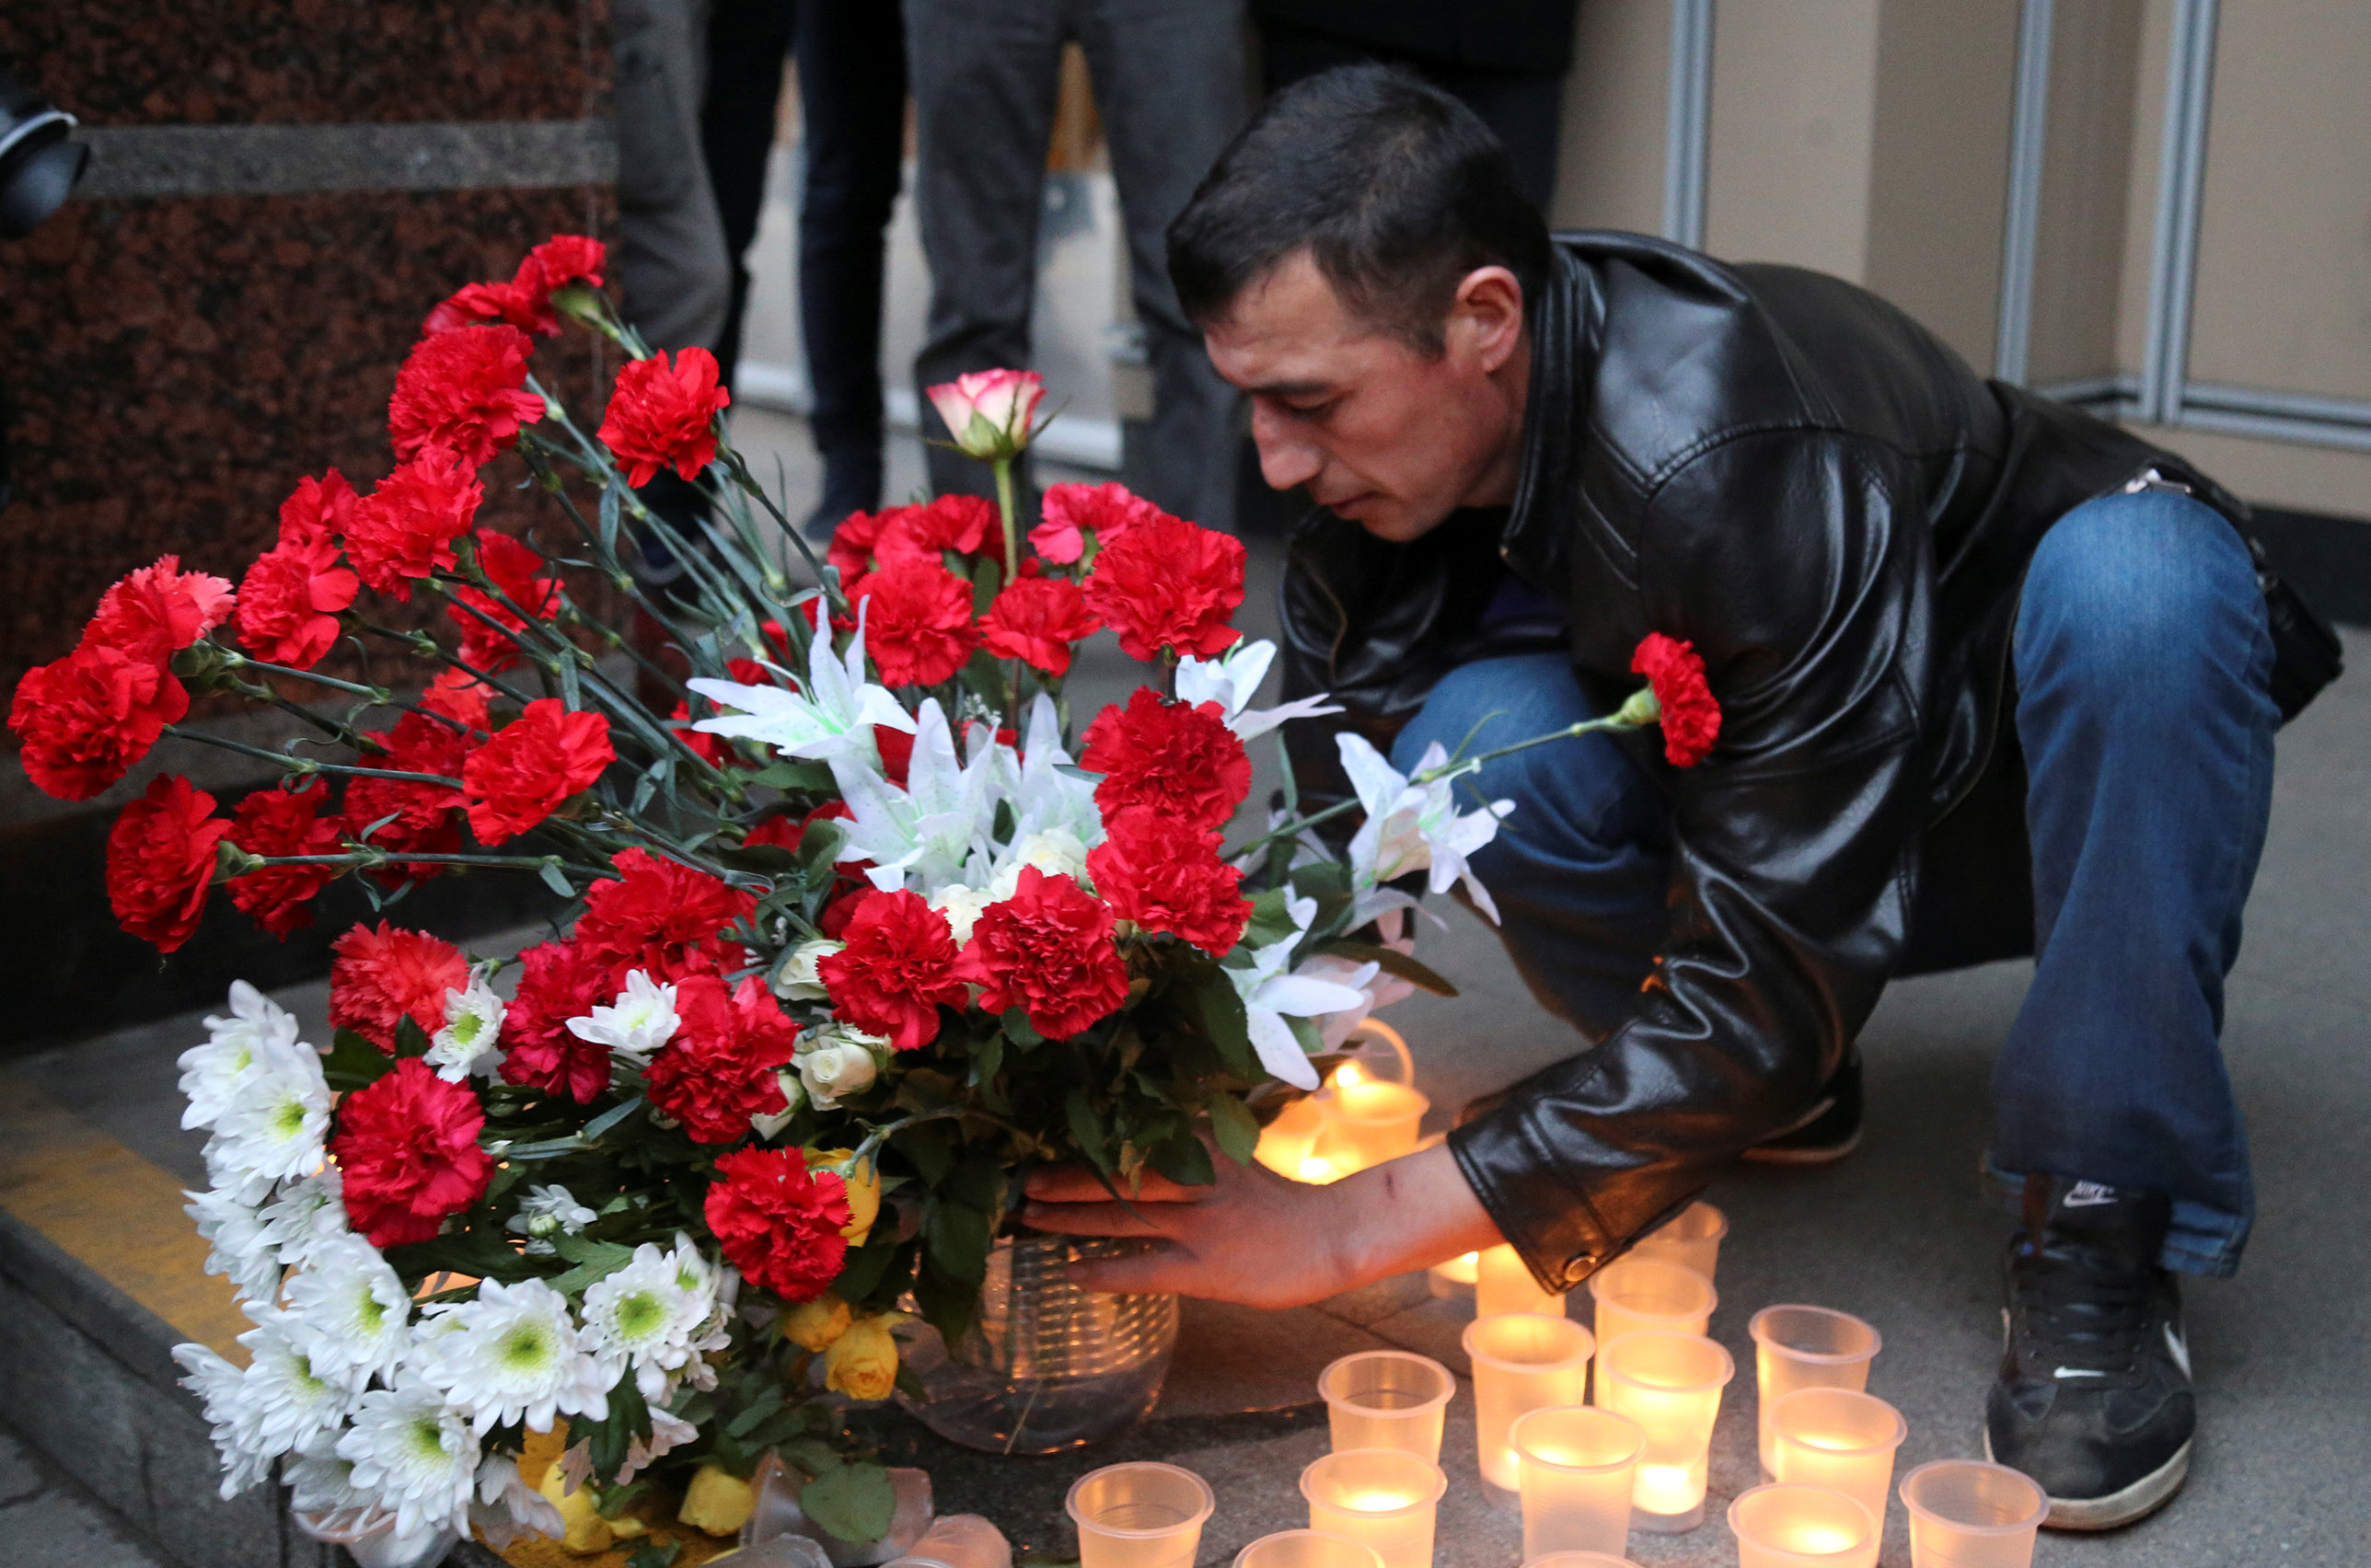 A man leaves flowers during a memorial service for victims of a blast in St.Petersburg metro, outside Sennaya Ploshchad metro station in St. Petersburg, Russia on April 3, 2017. (REUTERS/Igor Russak)